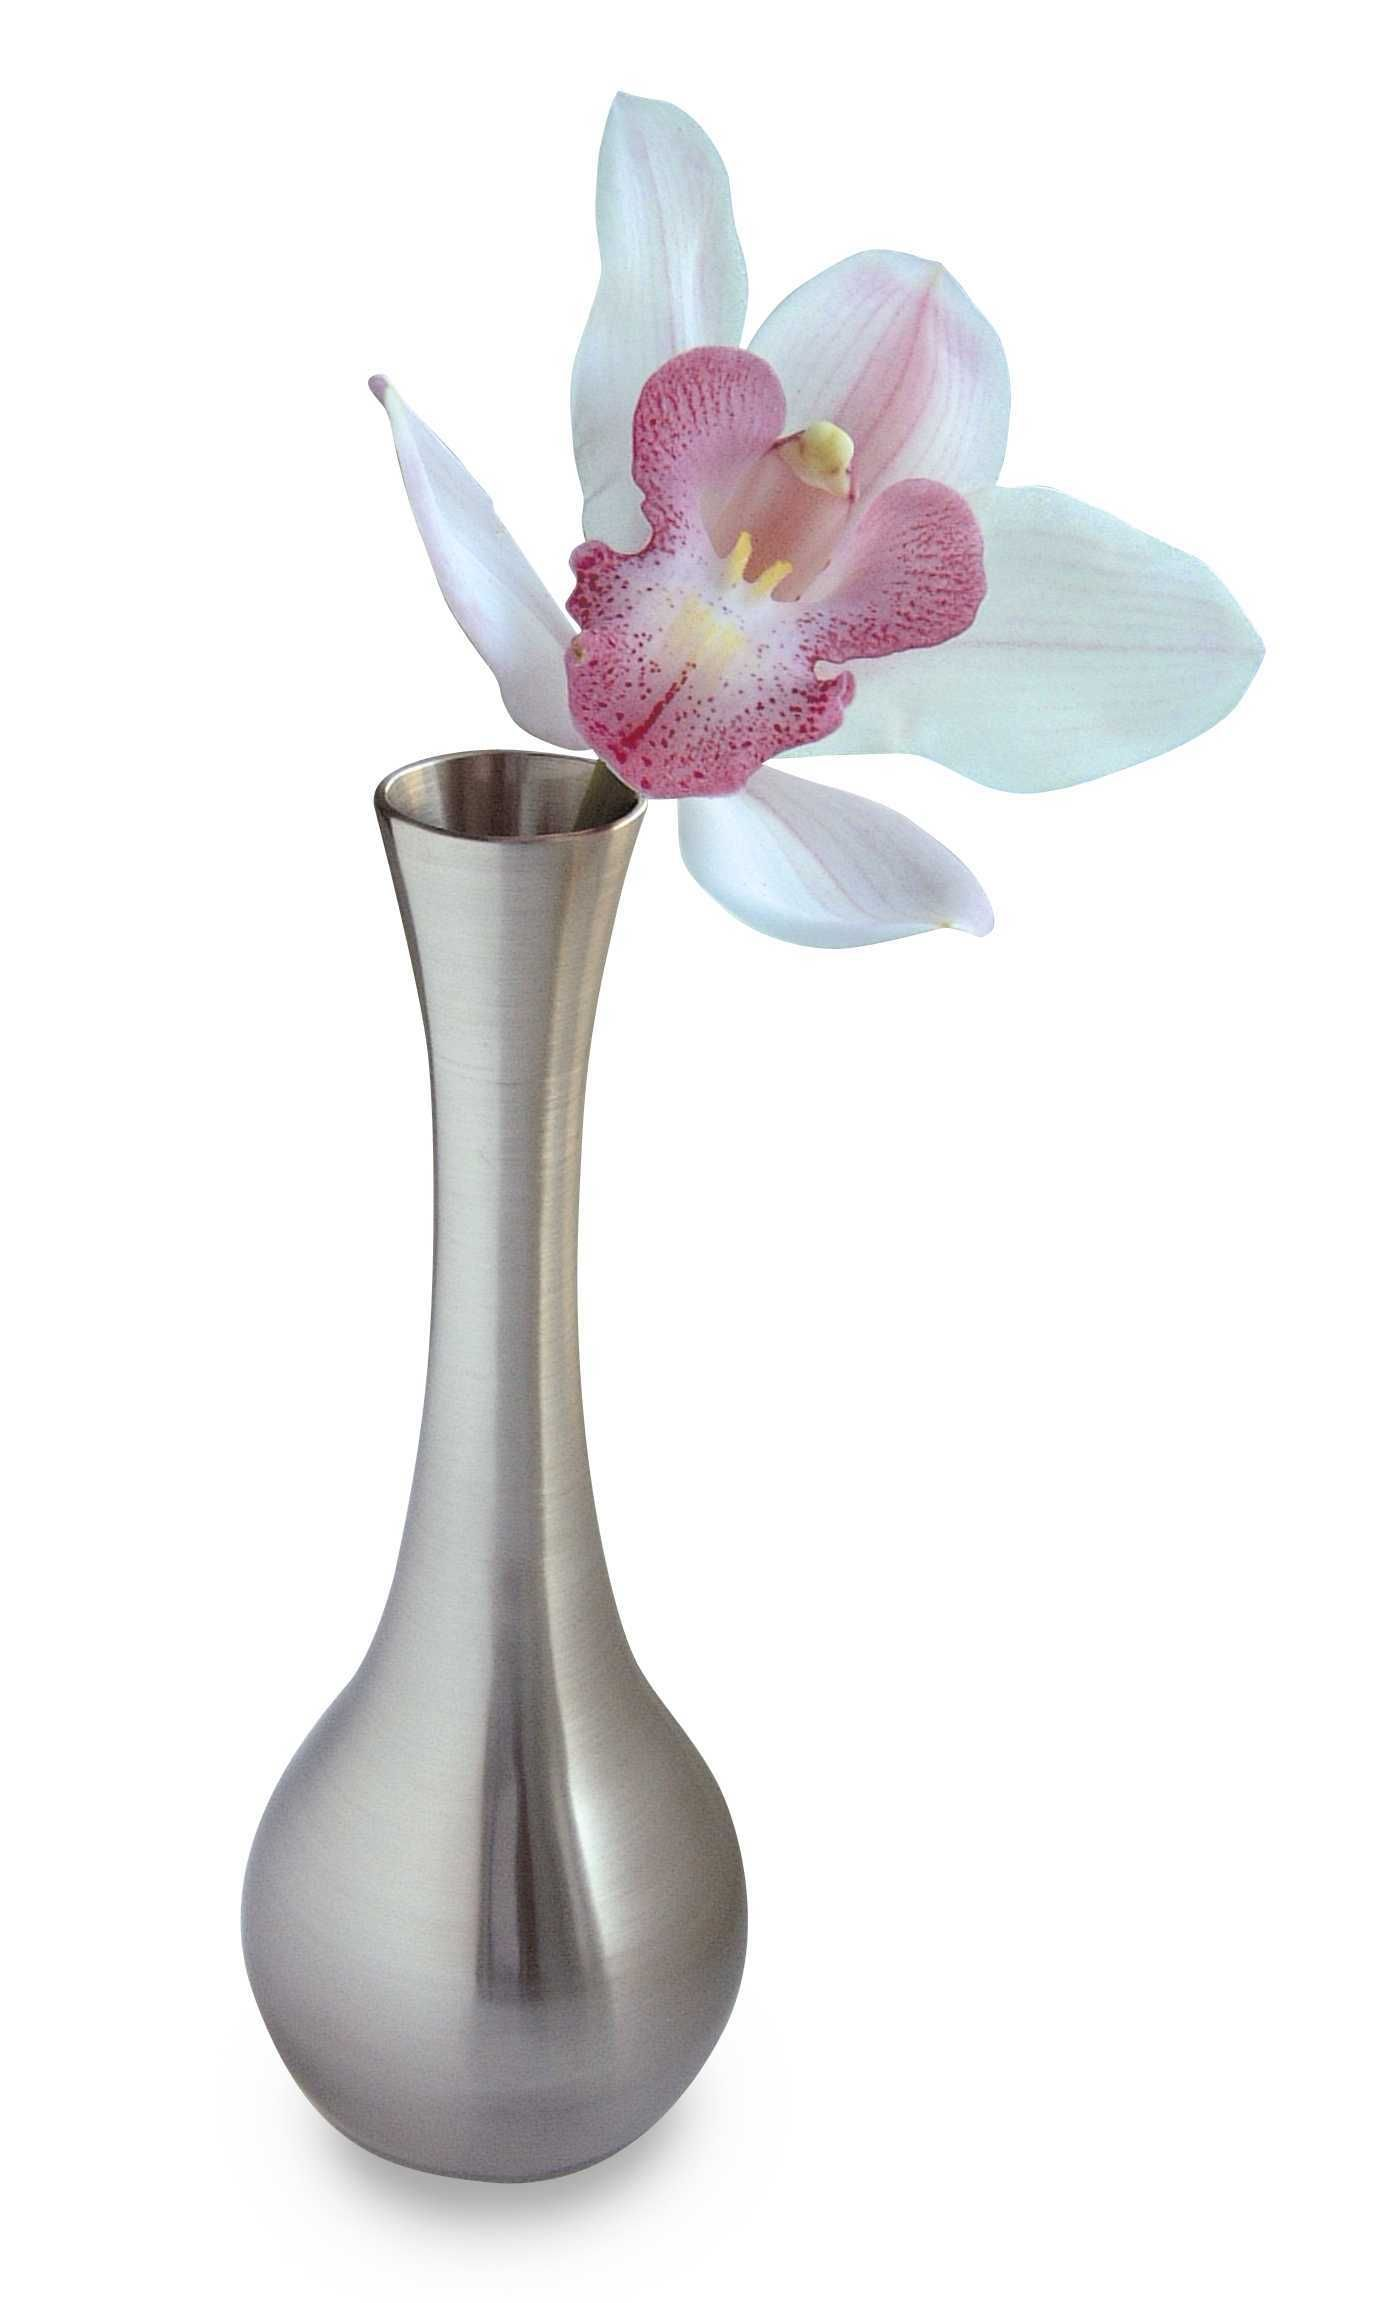 Bud vase with a stainless steel pewter finish kitchen bud vase with a stainless steel pewter finish reviewsmspy